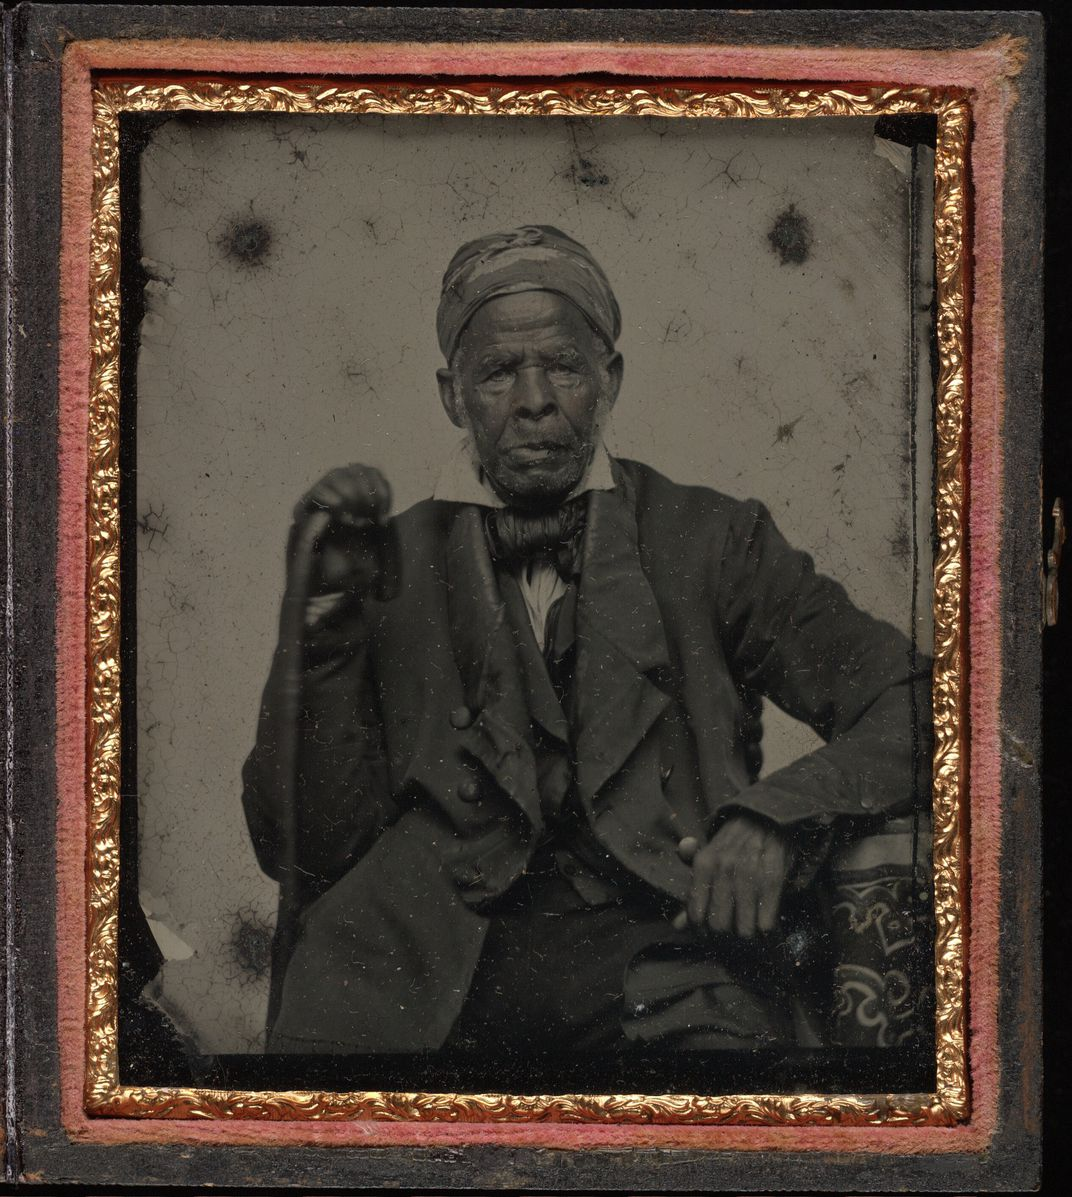 Only Surviving Arabic Slave Narrative Written in the United States Digitized by Library of Congress